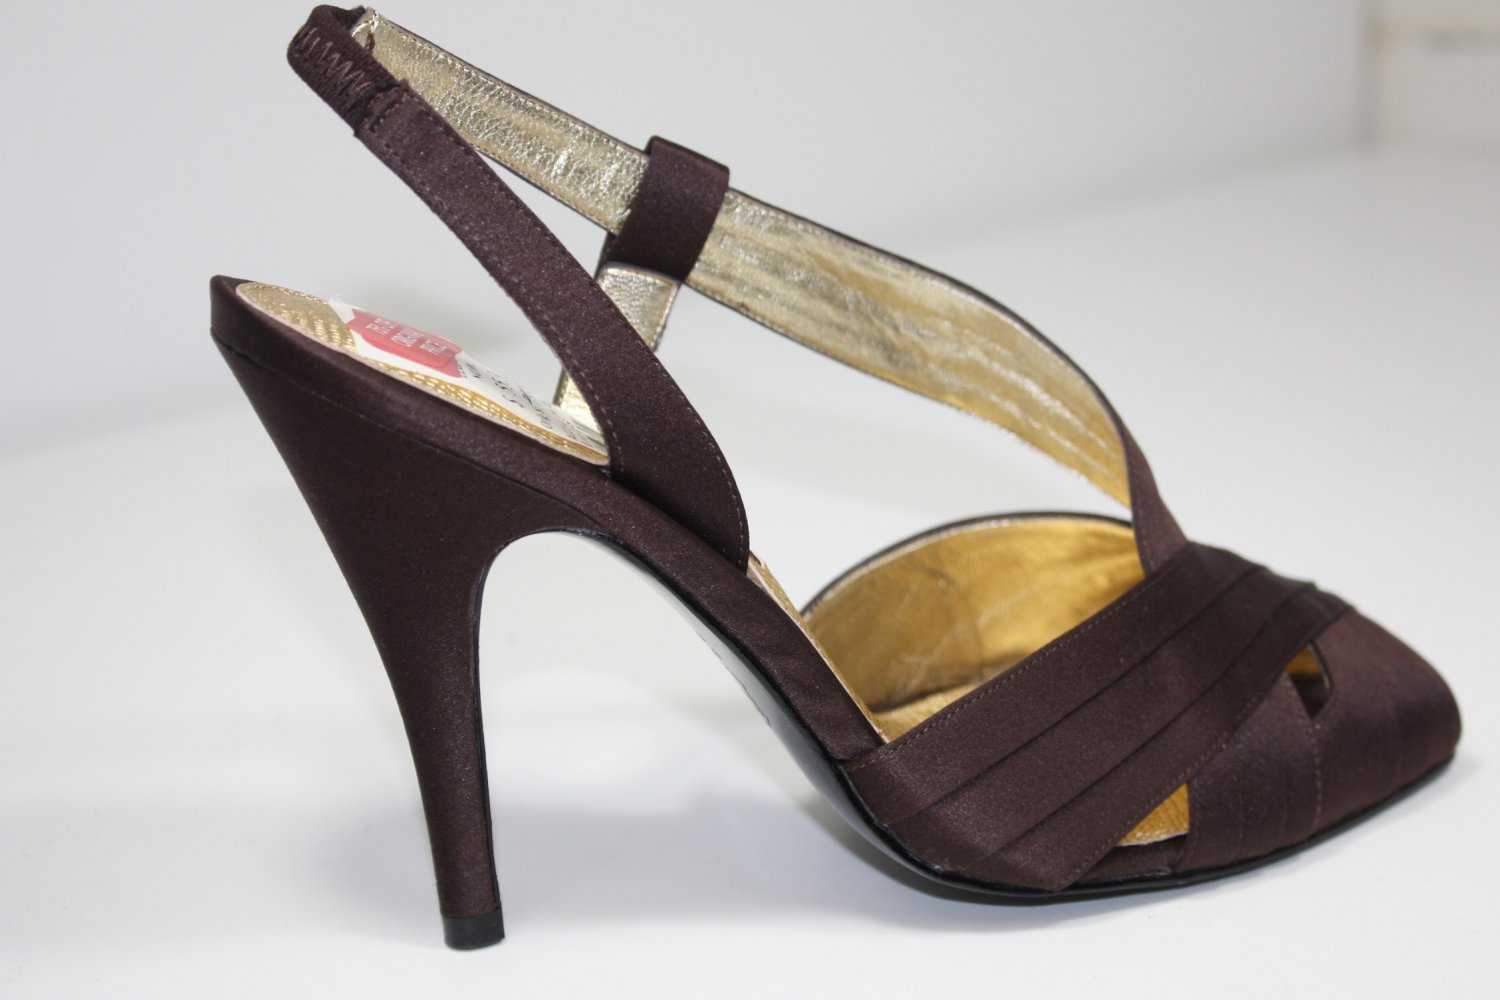 Nina  Aggy Pumps Dark Brown Shoes US 7.5 $79